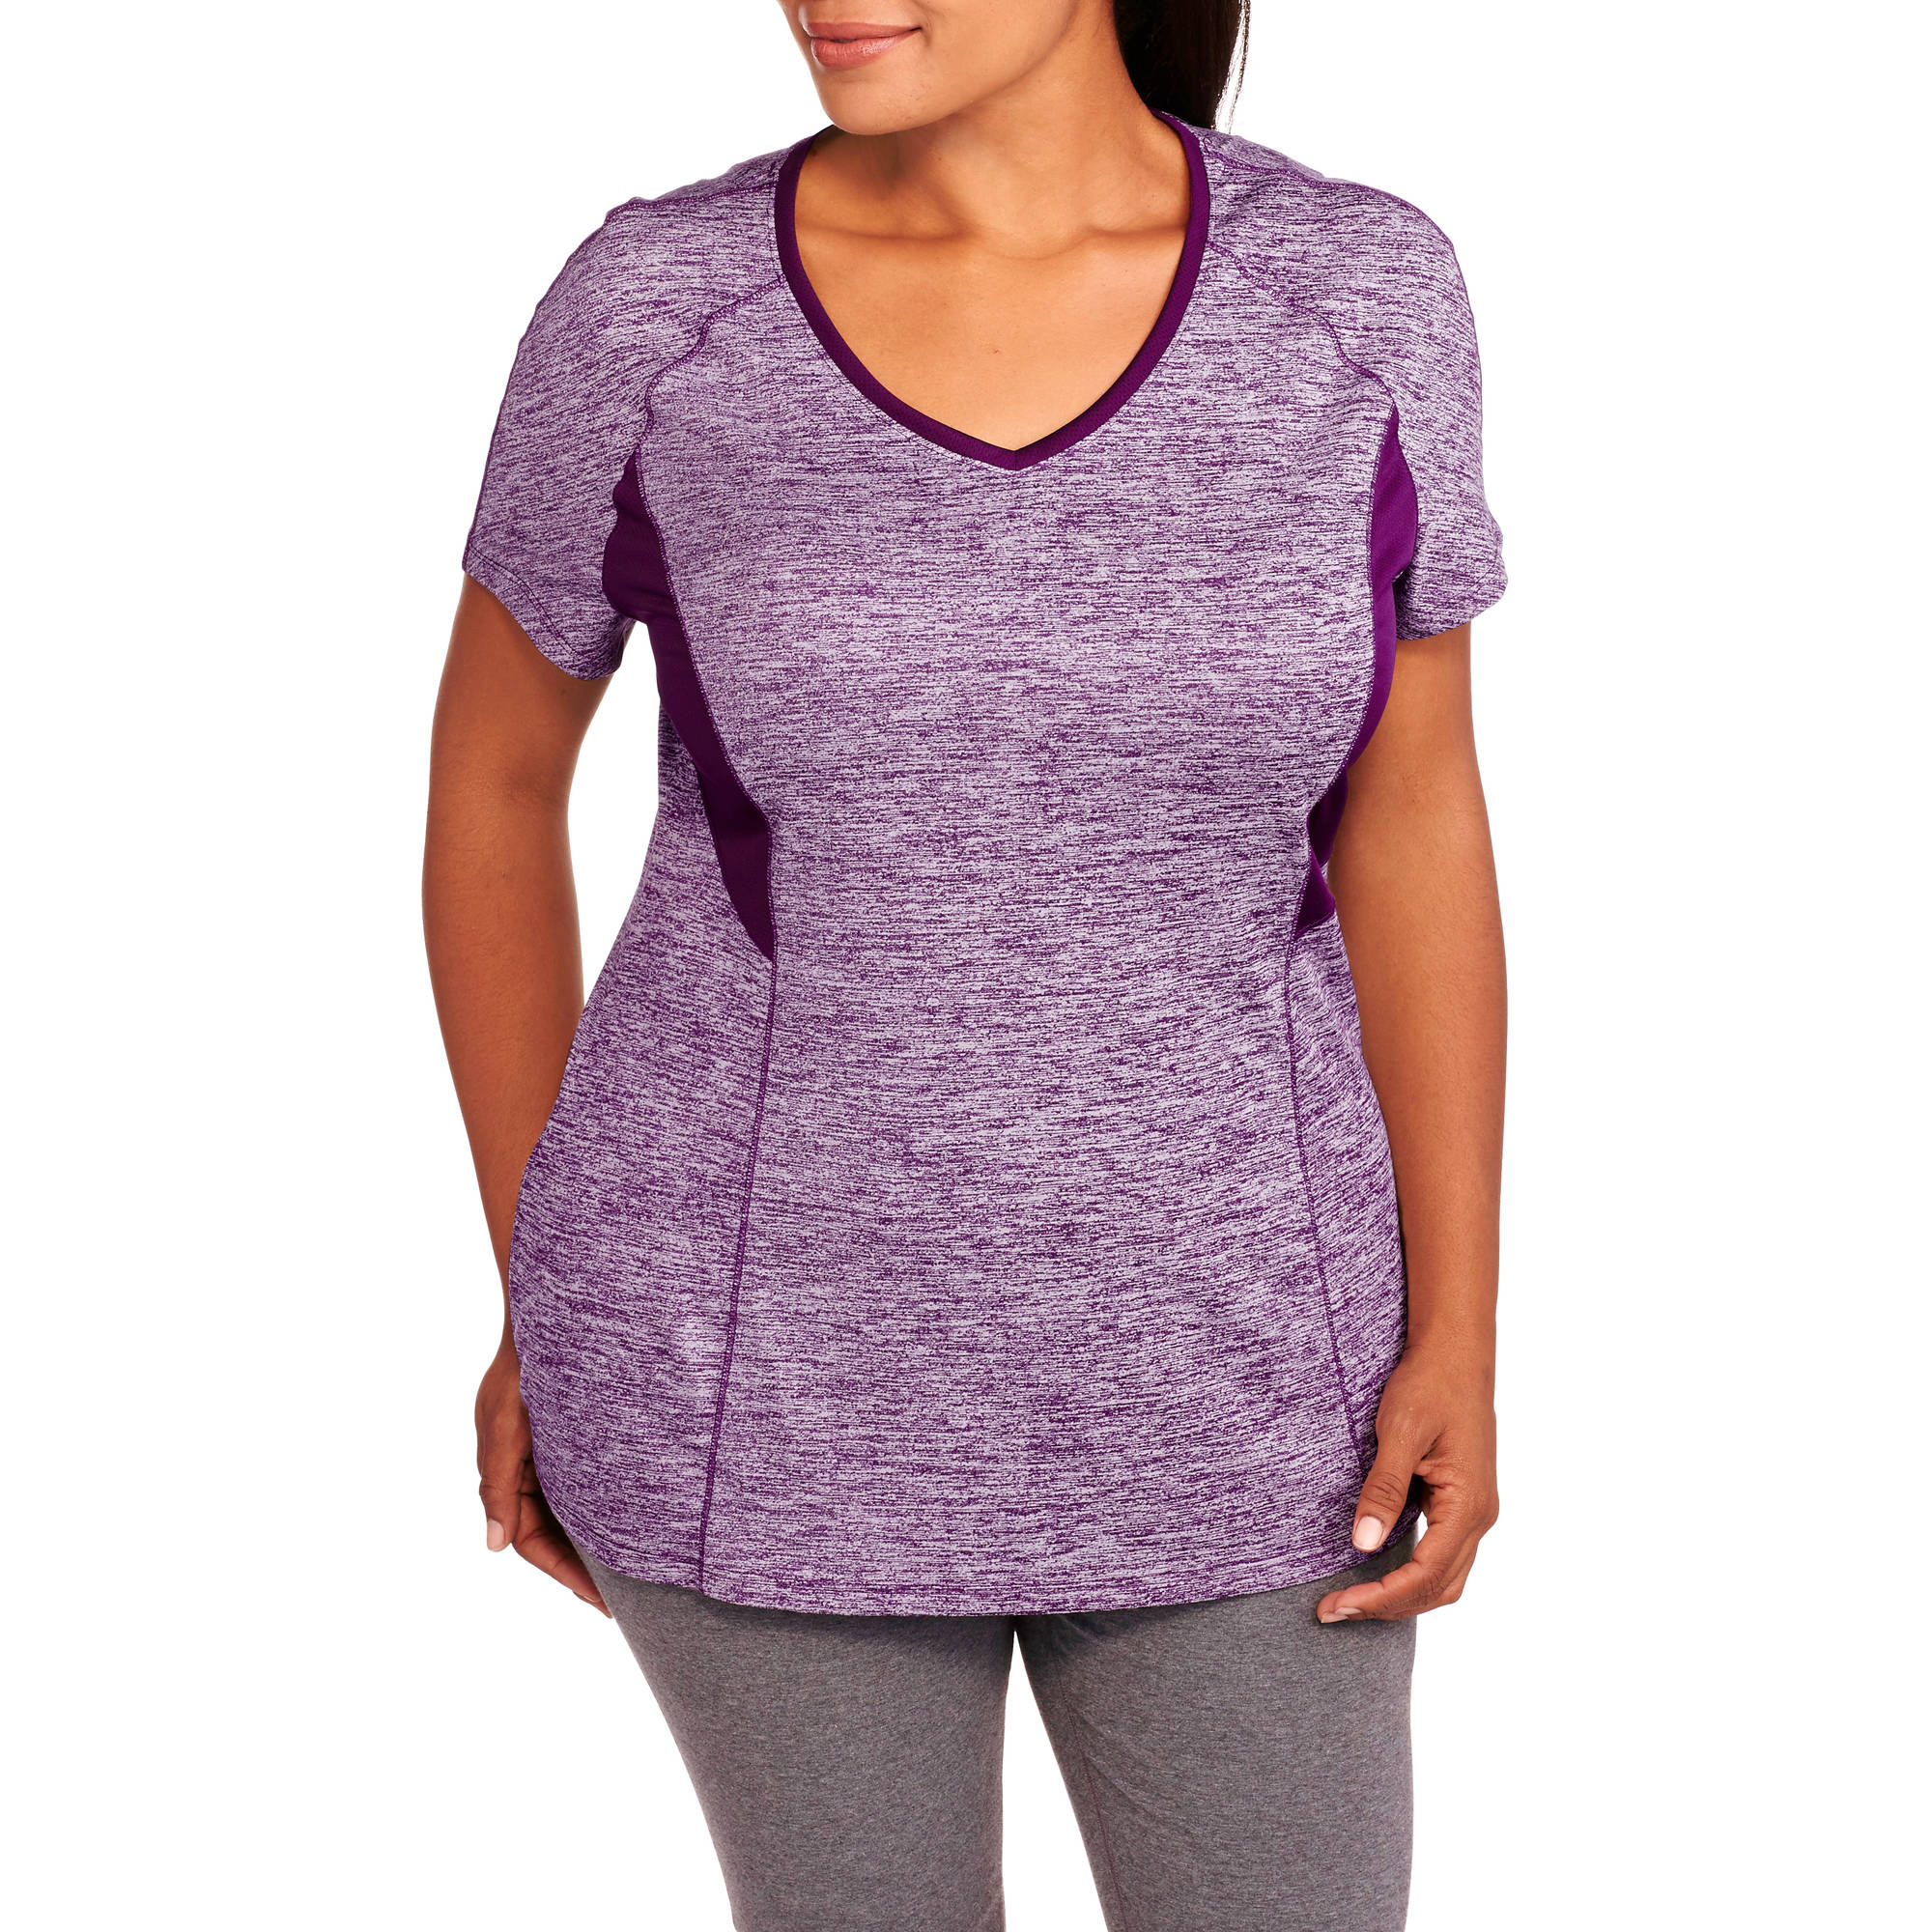 Danskin Now Women's Plus-Size Active Heather V-Neck Performance  Tee